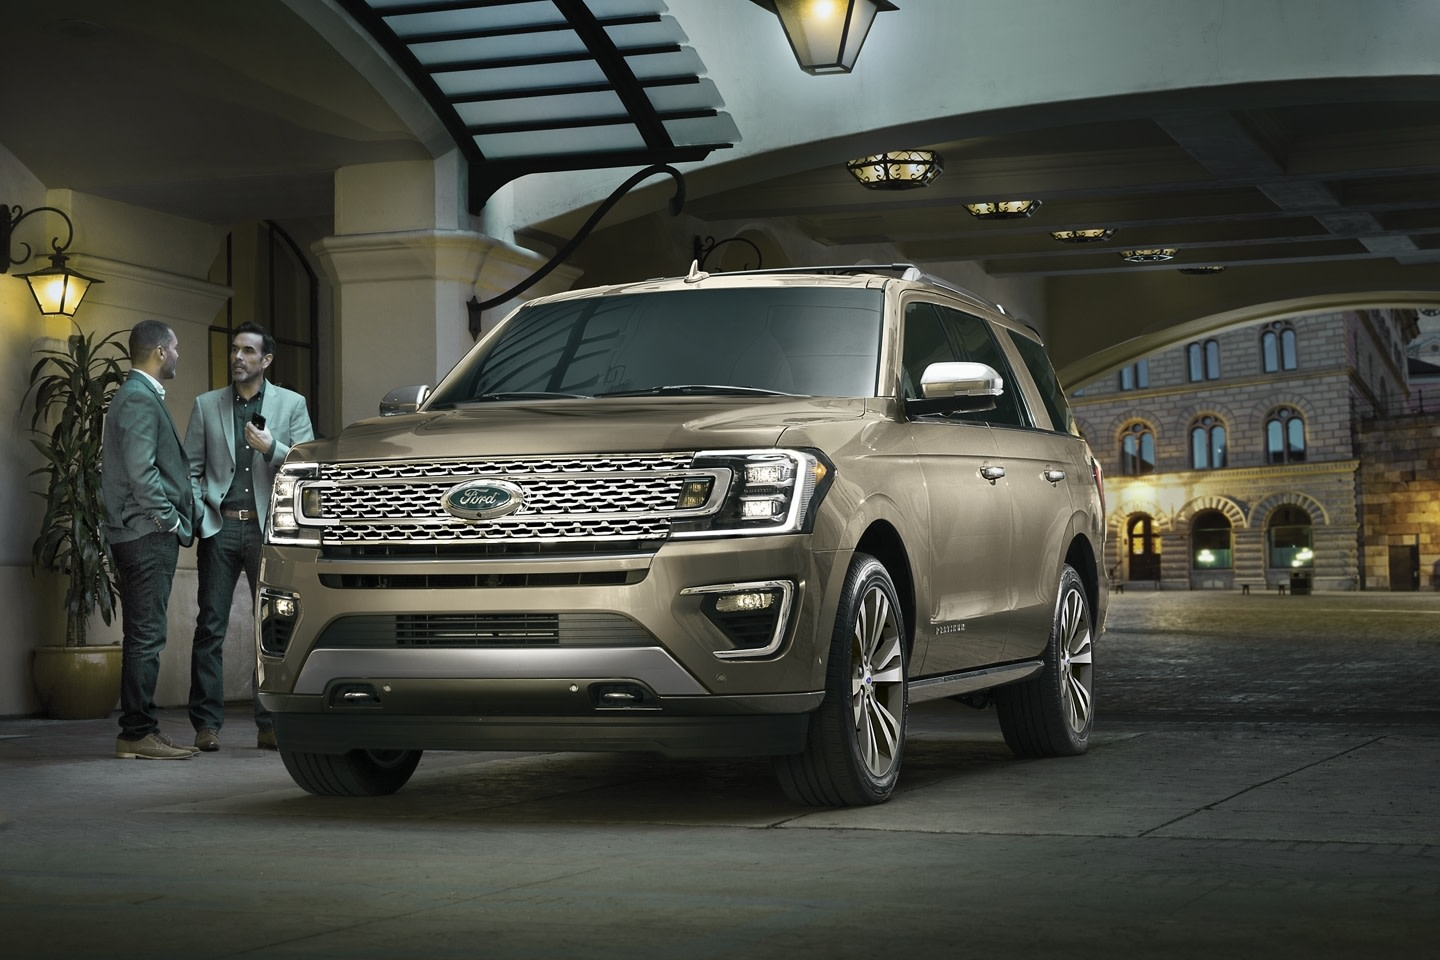 2020 Ford Expedition for Sale near Orland Park, IL